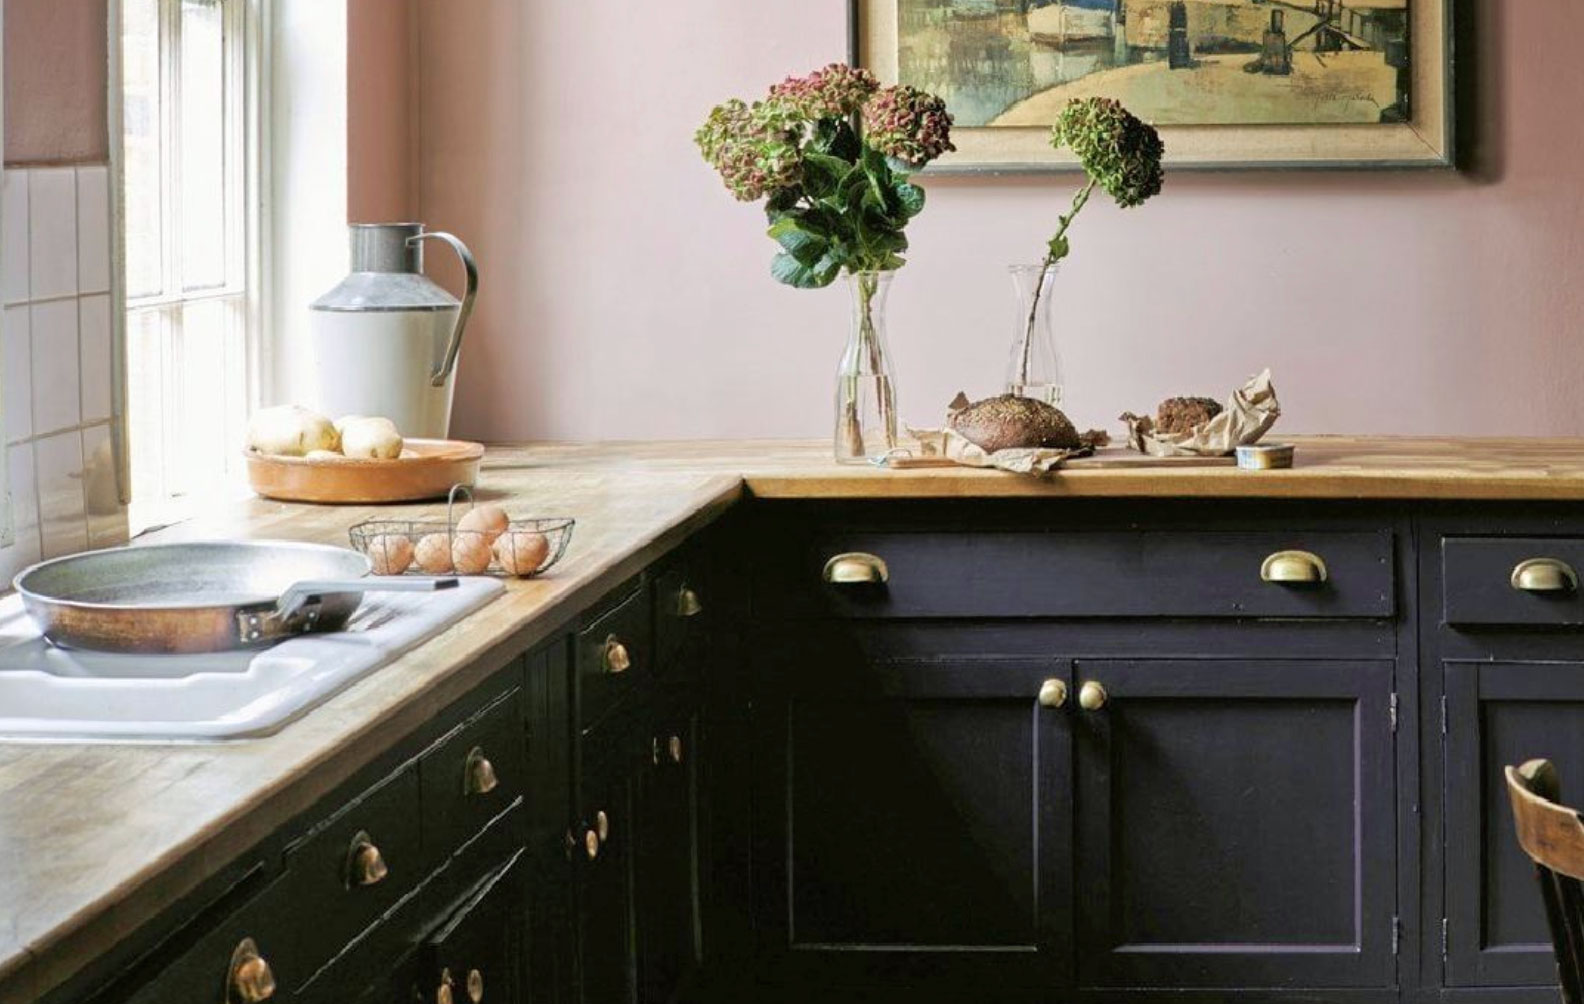 Best Kitchen Worktops How To Choose The Right Worktop Type For Your Space Real Homes